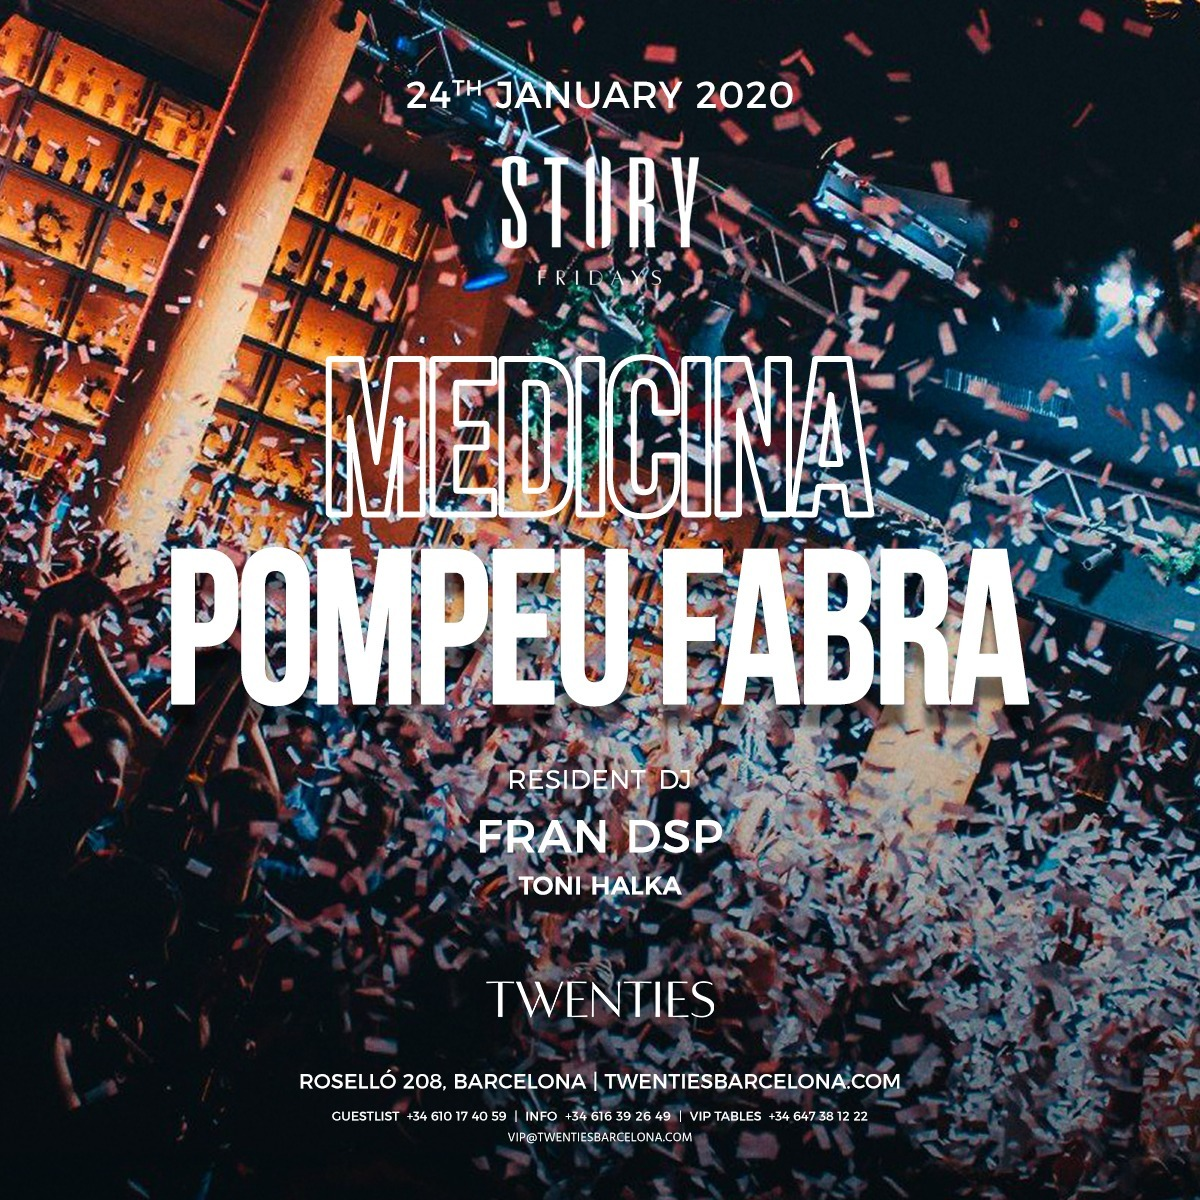 Viernes - Story - Twenties - Club Twenties Barcelona